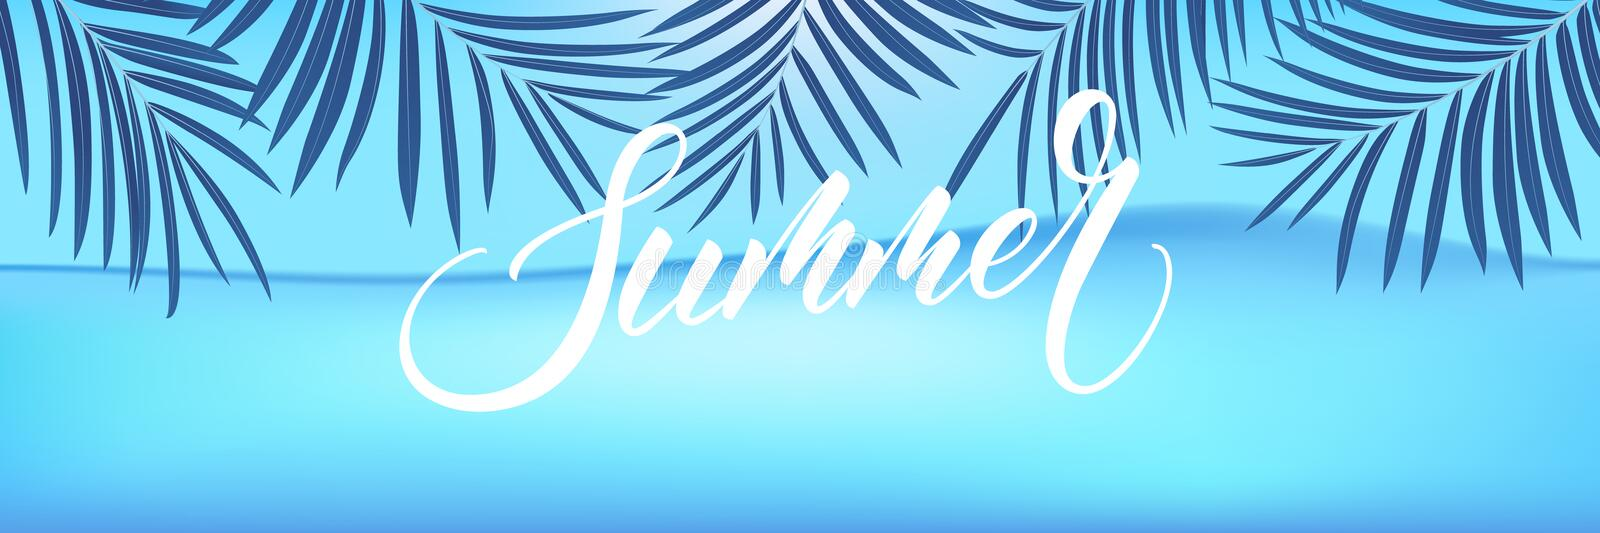 Summer background. Palm leaves tropical wallpaper with ocean. Summer trendy design for ad, invitation, flyer, poster, web banner.  royalty free illustration